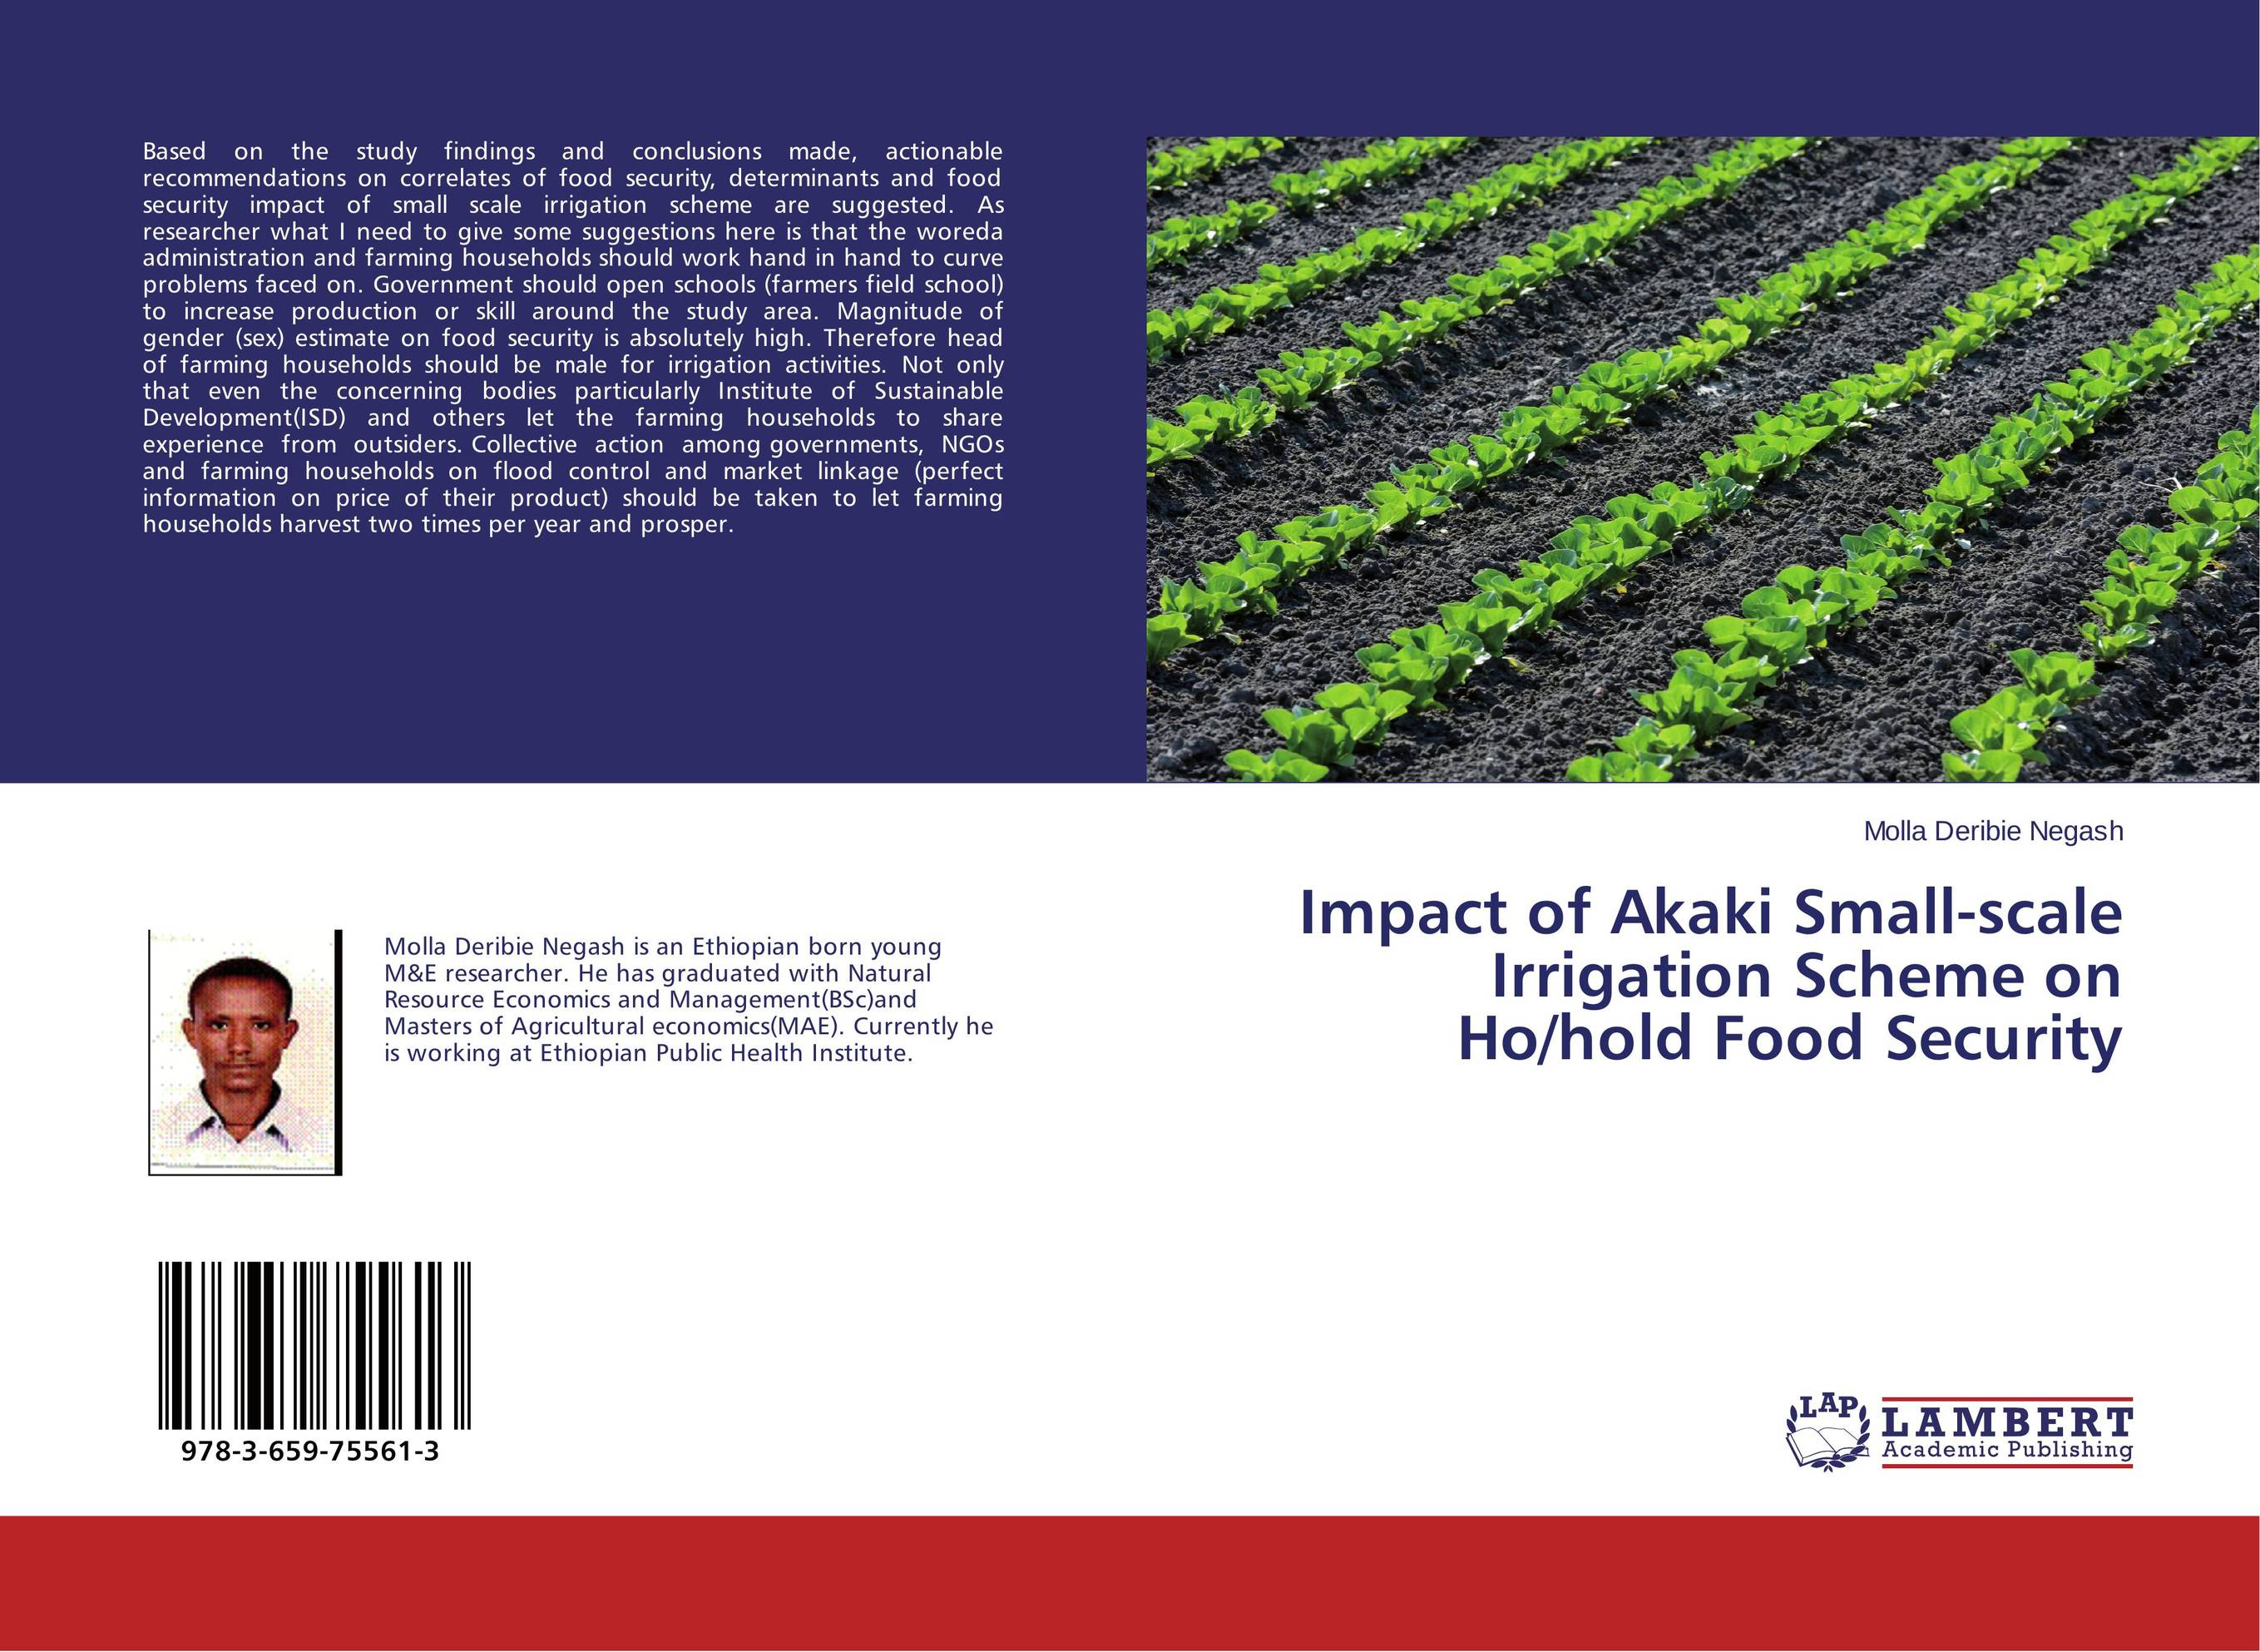 Impact of Akaki Small-scale Irrigation Scheme on Ho/hold Food Security